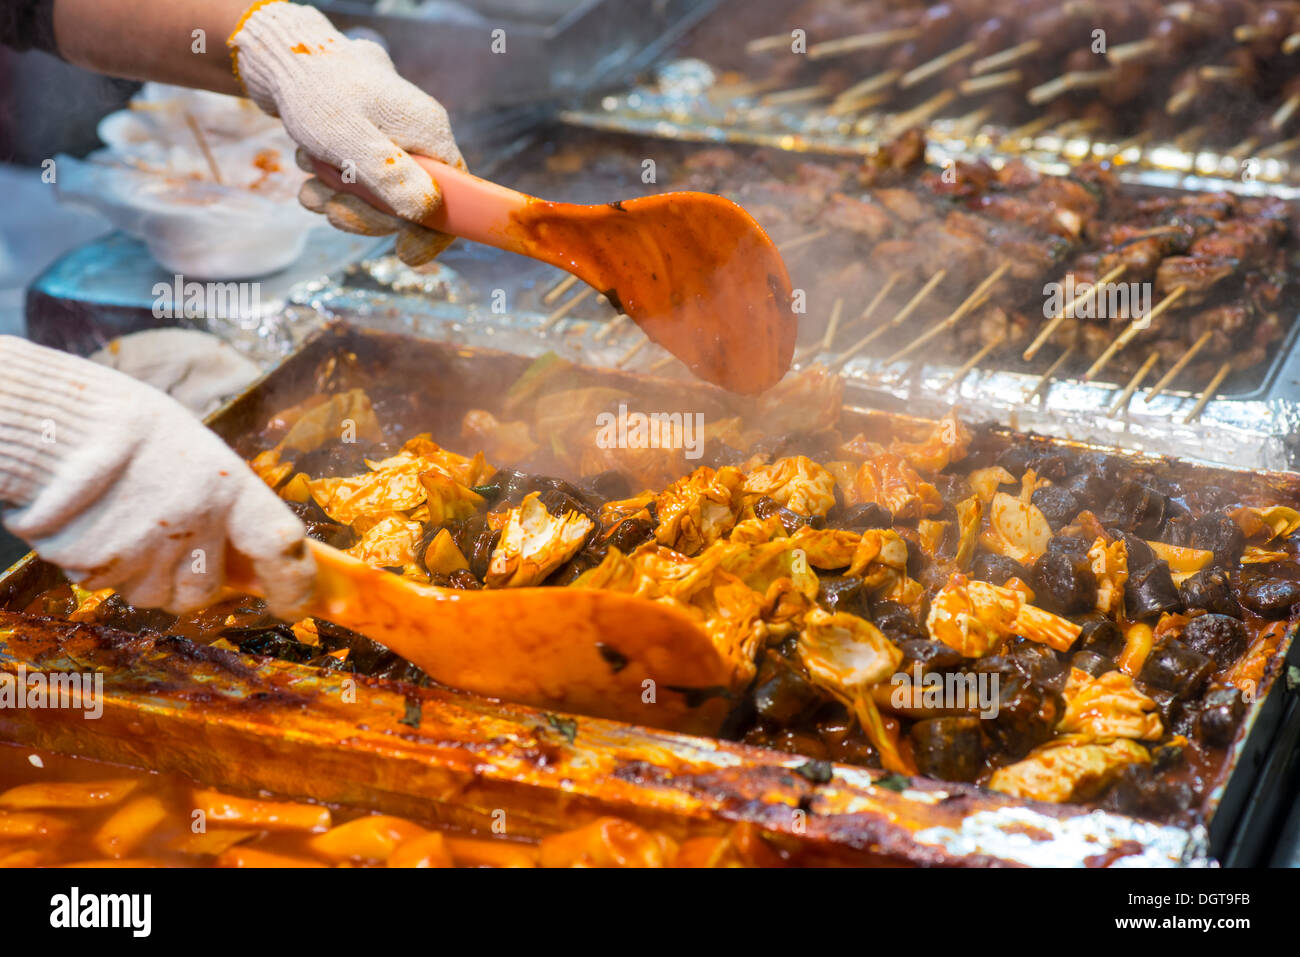 Food preperation at a night market in Myeong-dong, Seoul, South Korea. - Stock Image